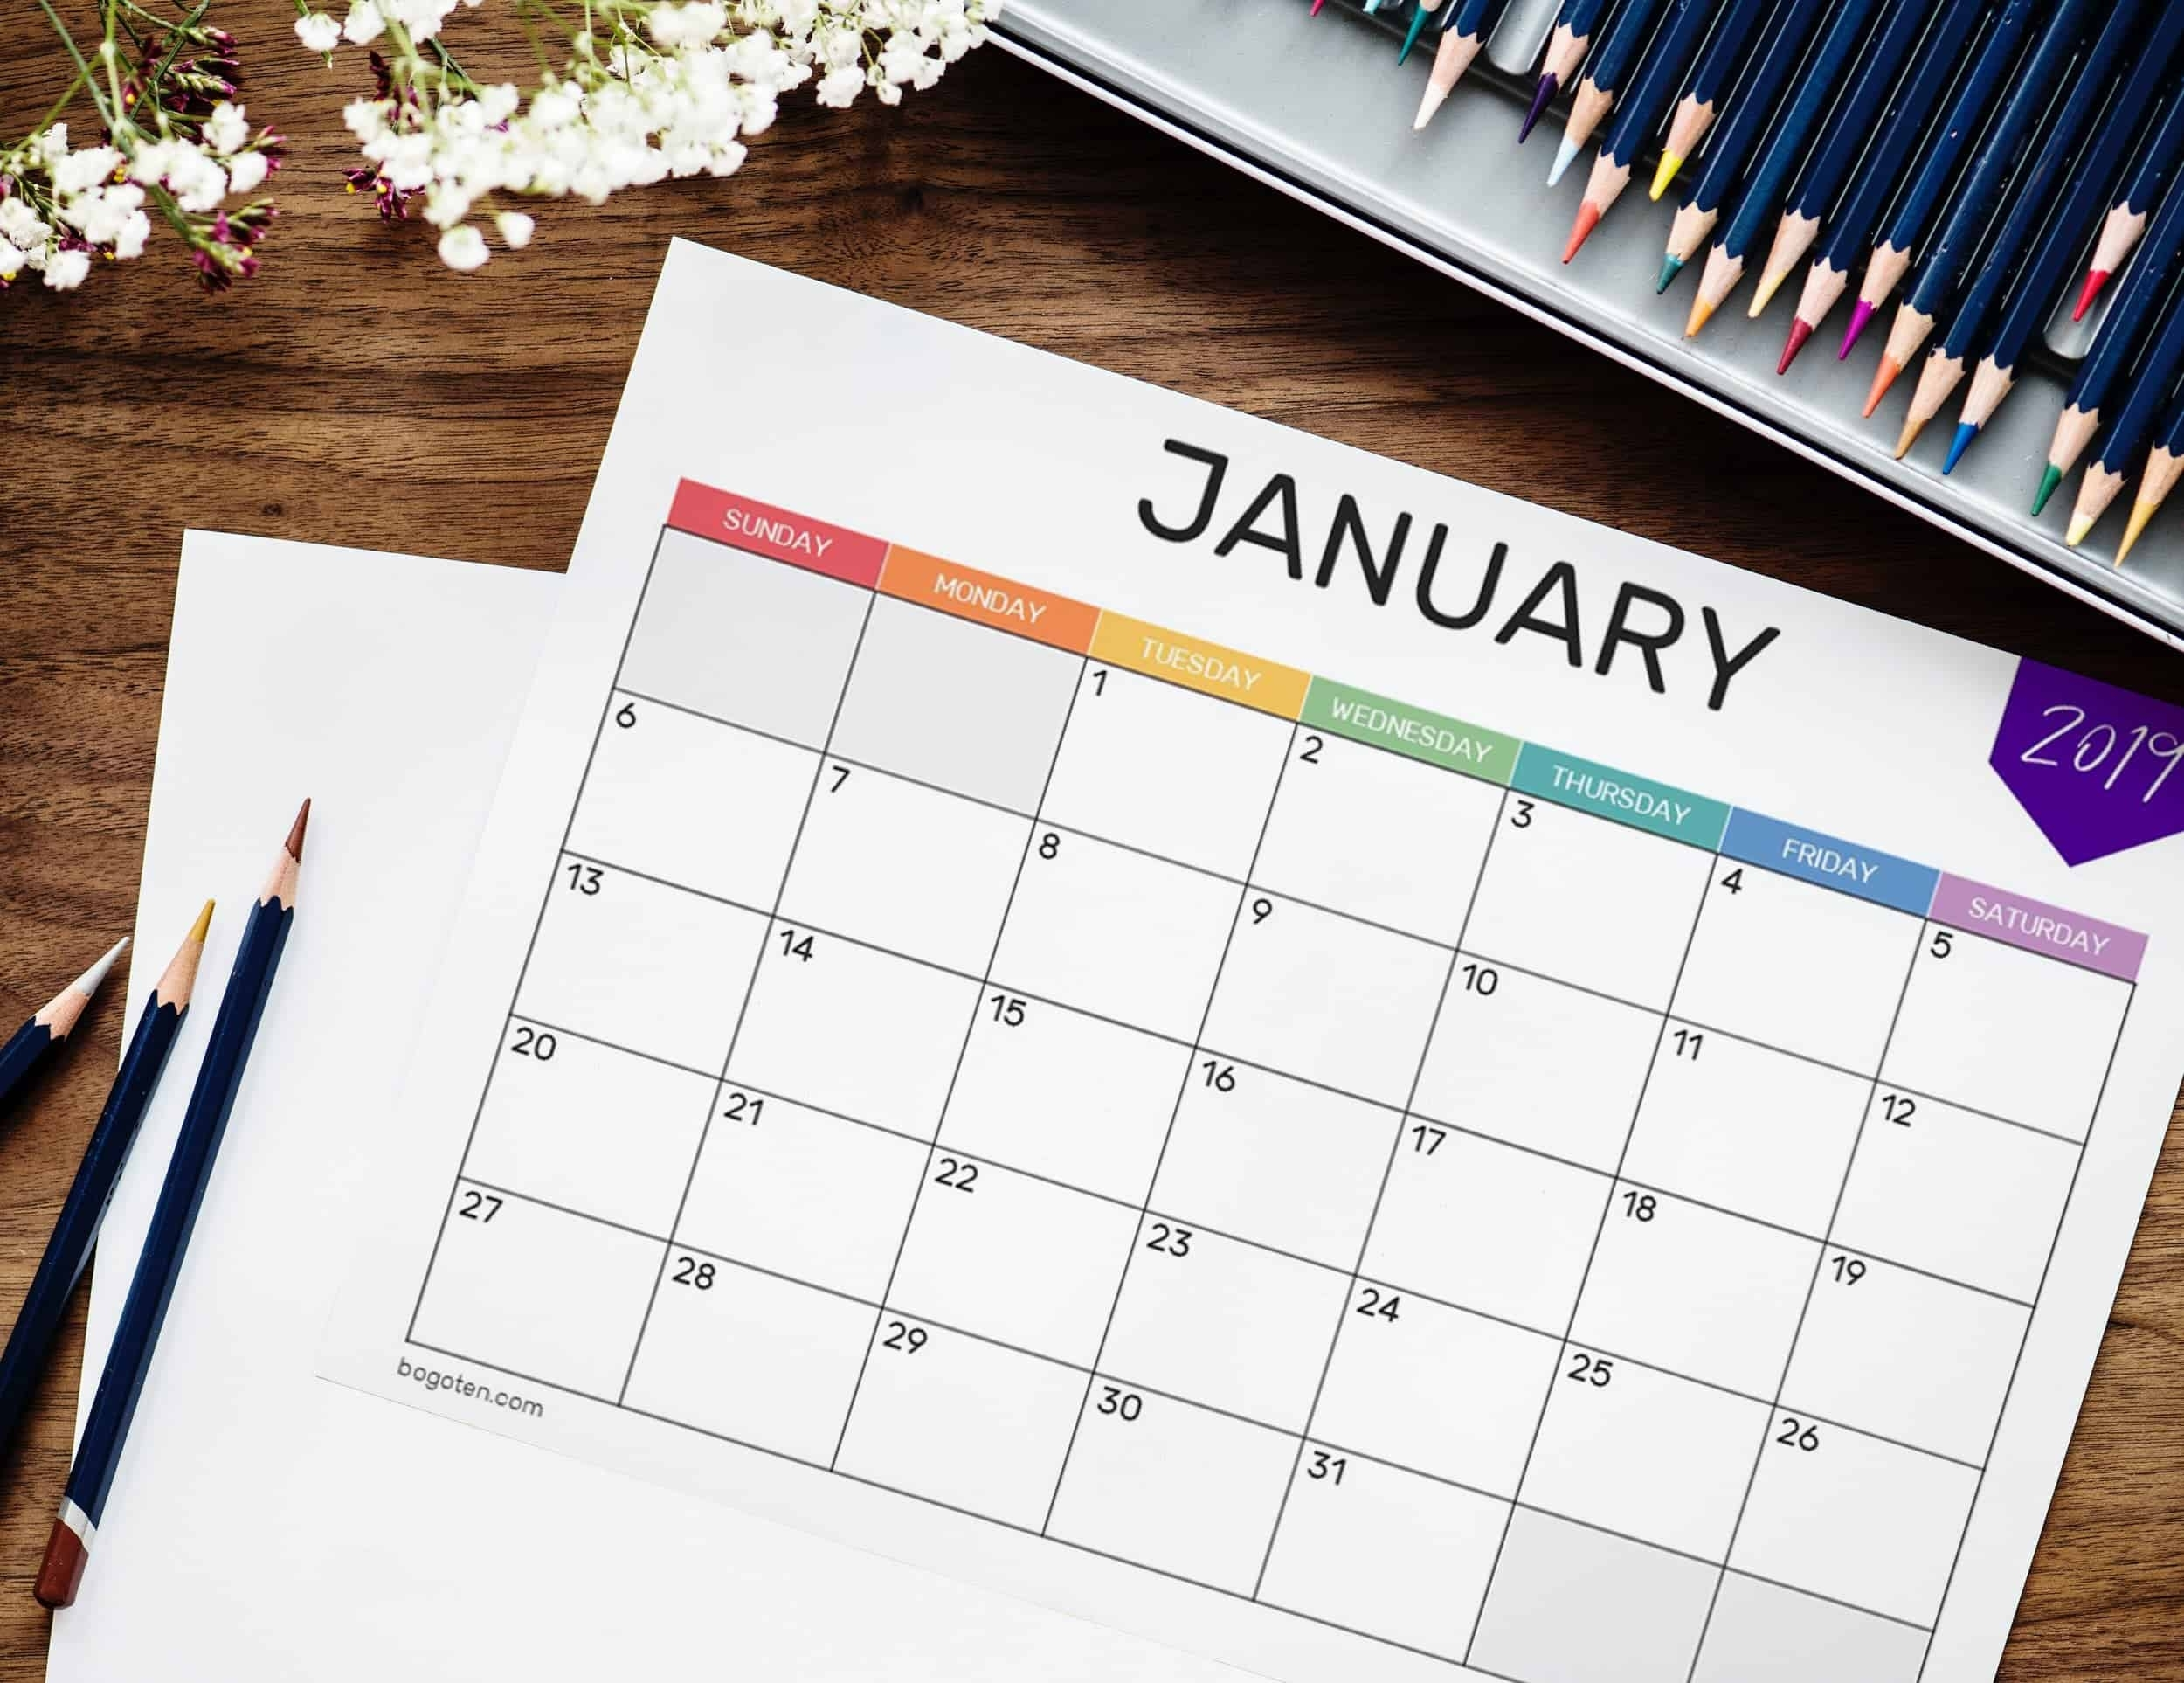 Free 2019 Printable Calendars regarding Calendars To Print Free With Space To Write